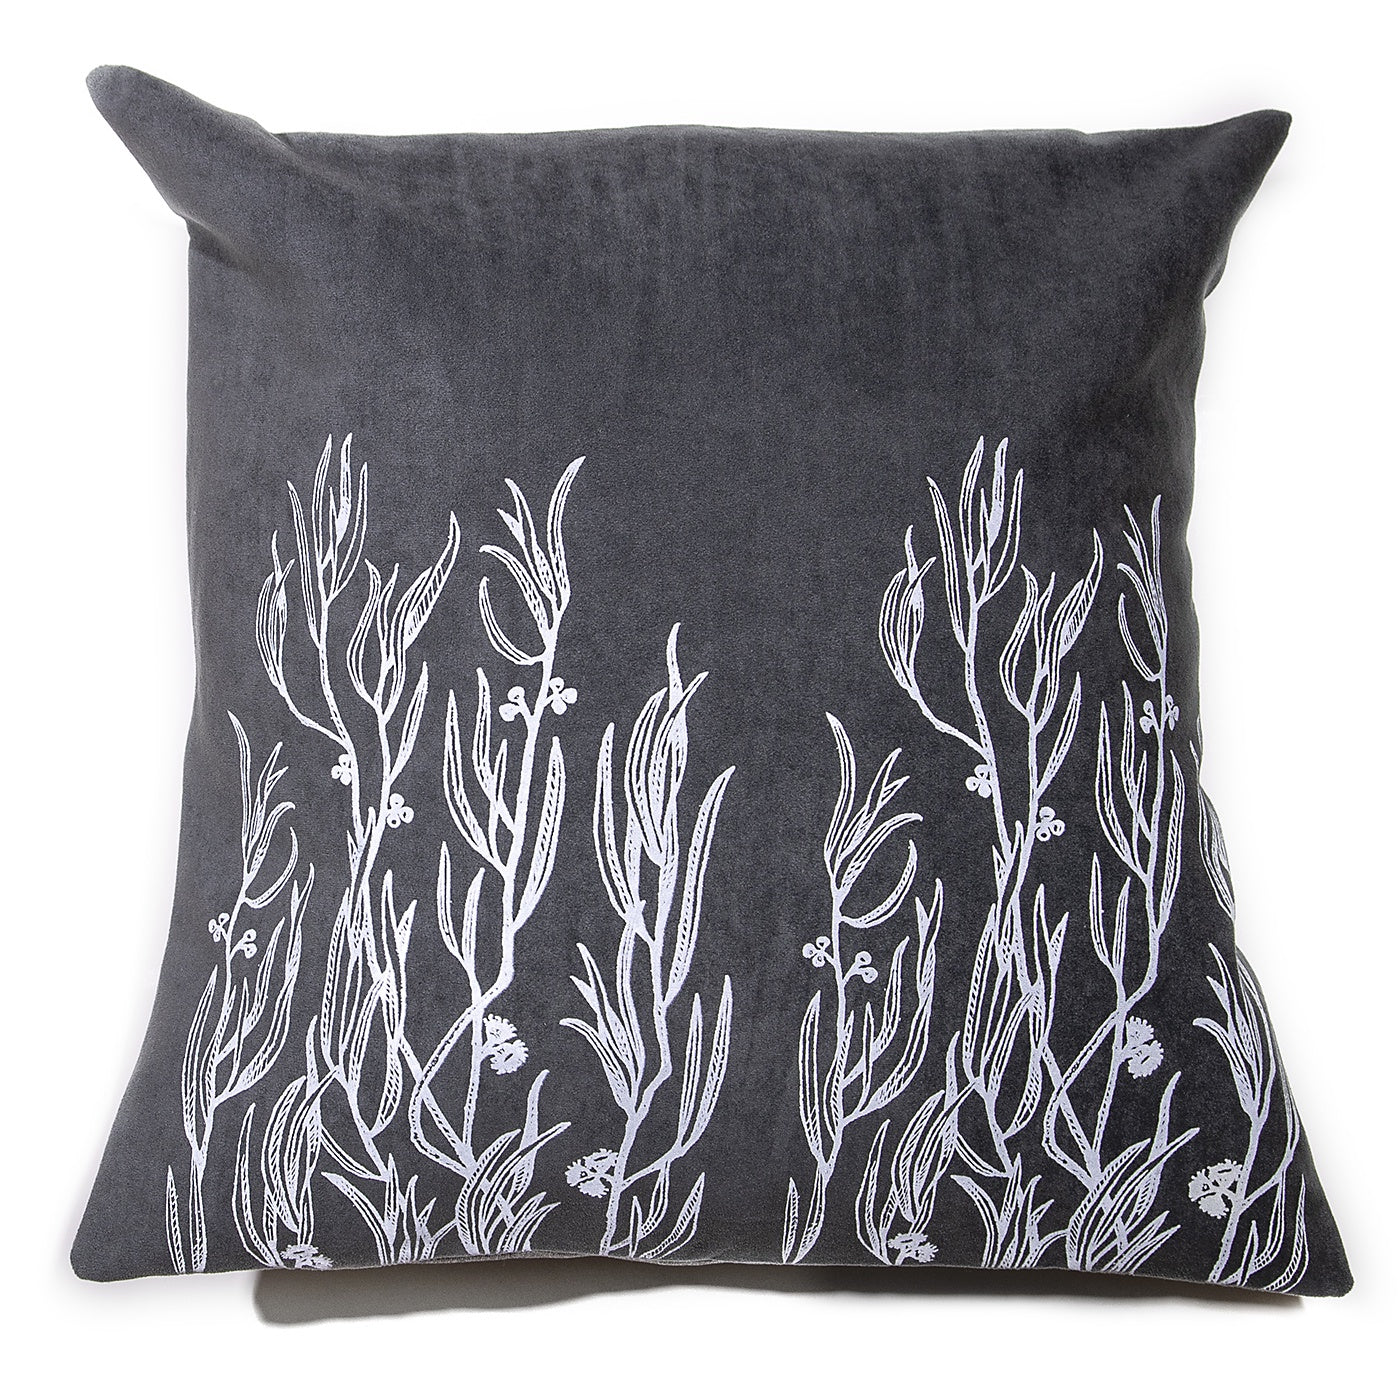 Stalley Textile Co. - Cushion Cover - Peppermint - White on Charcoal